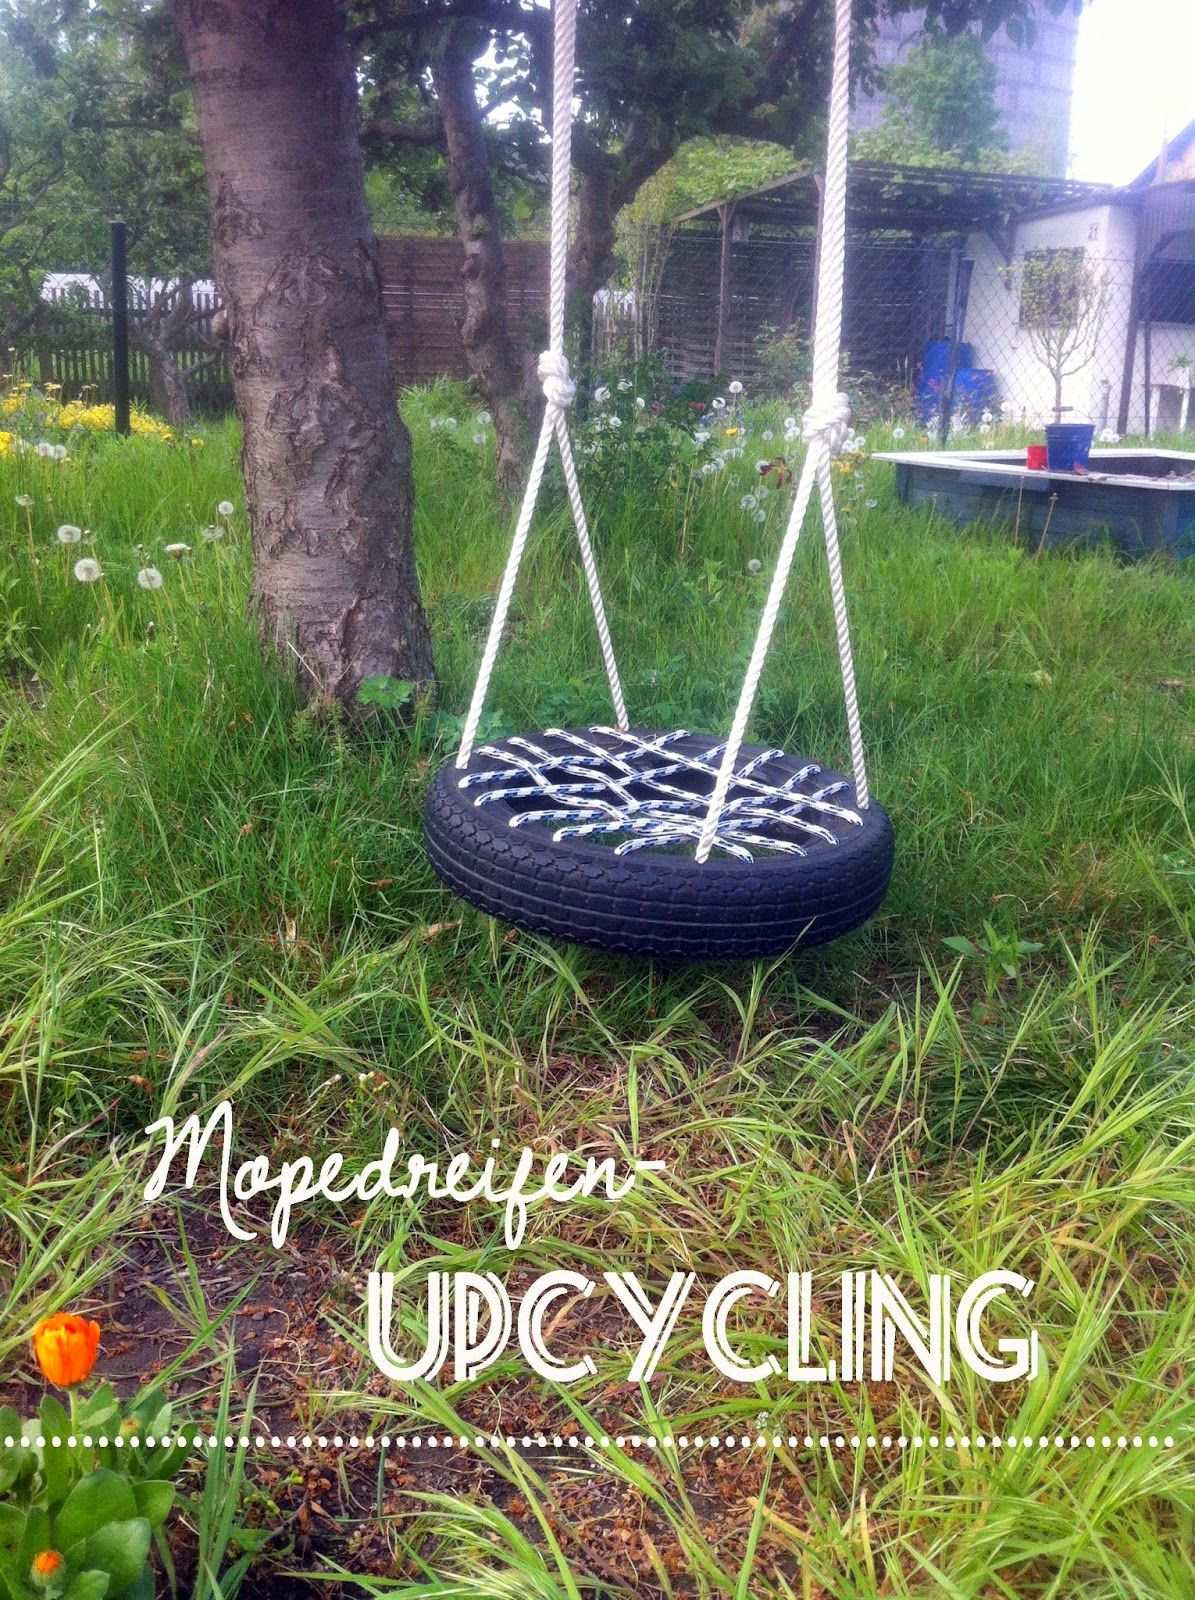 upcycling kinderschaukel aus reifen swing made of car tyre upcyclingapril2014 in 2019. Black Bedroom Furniture Sets. Home Design Ideas